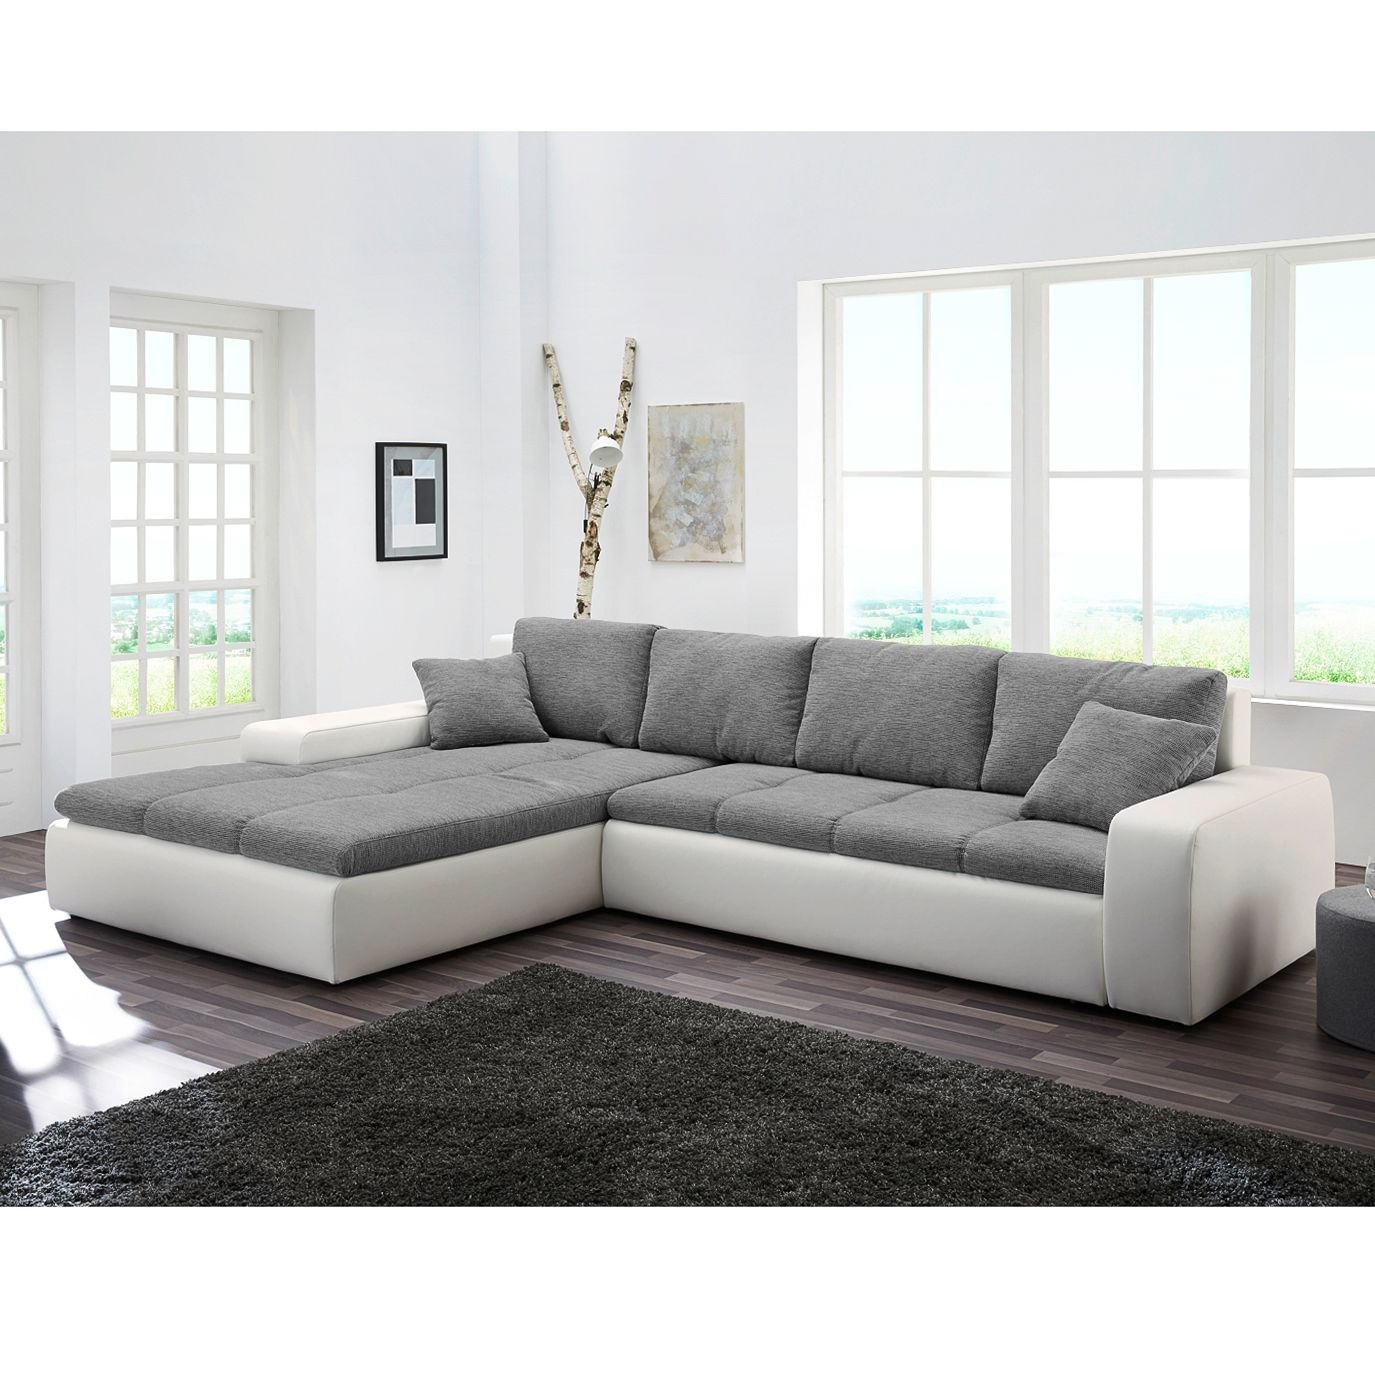 Smart Ecksofa Anna Ecksofa Wilora Mit Schlaffunktion Products Sofa Furniture